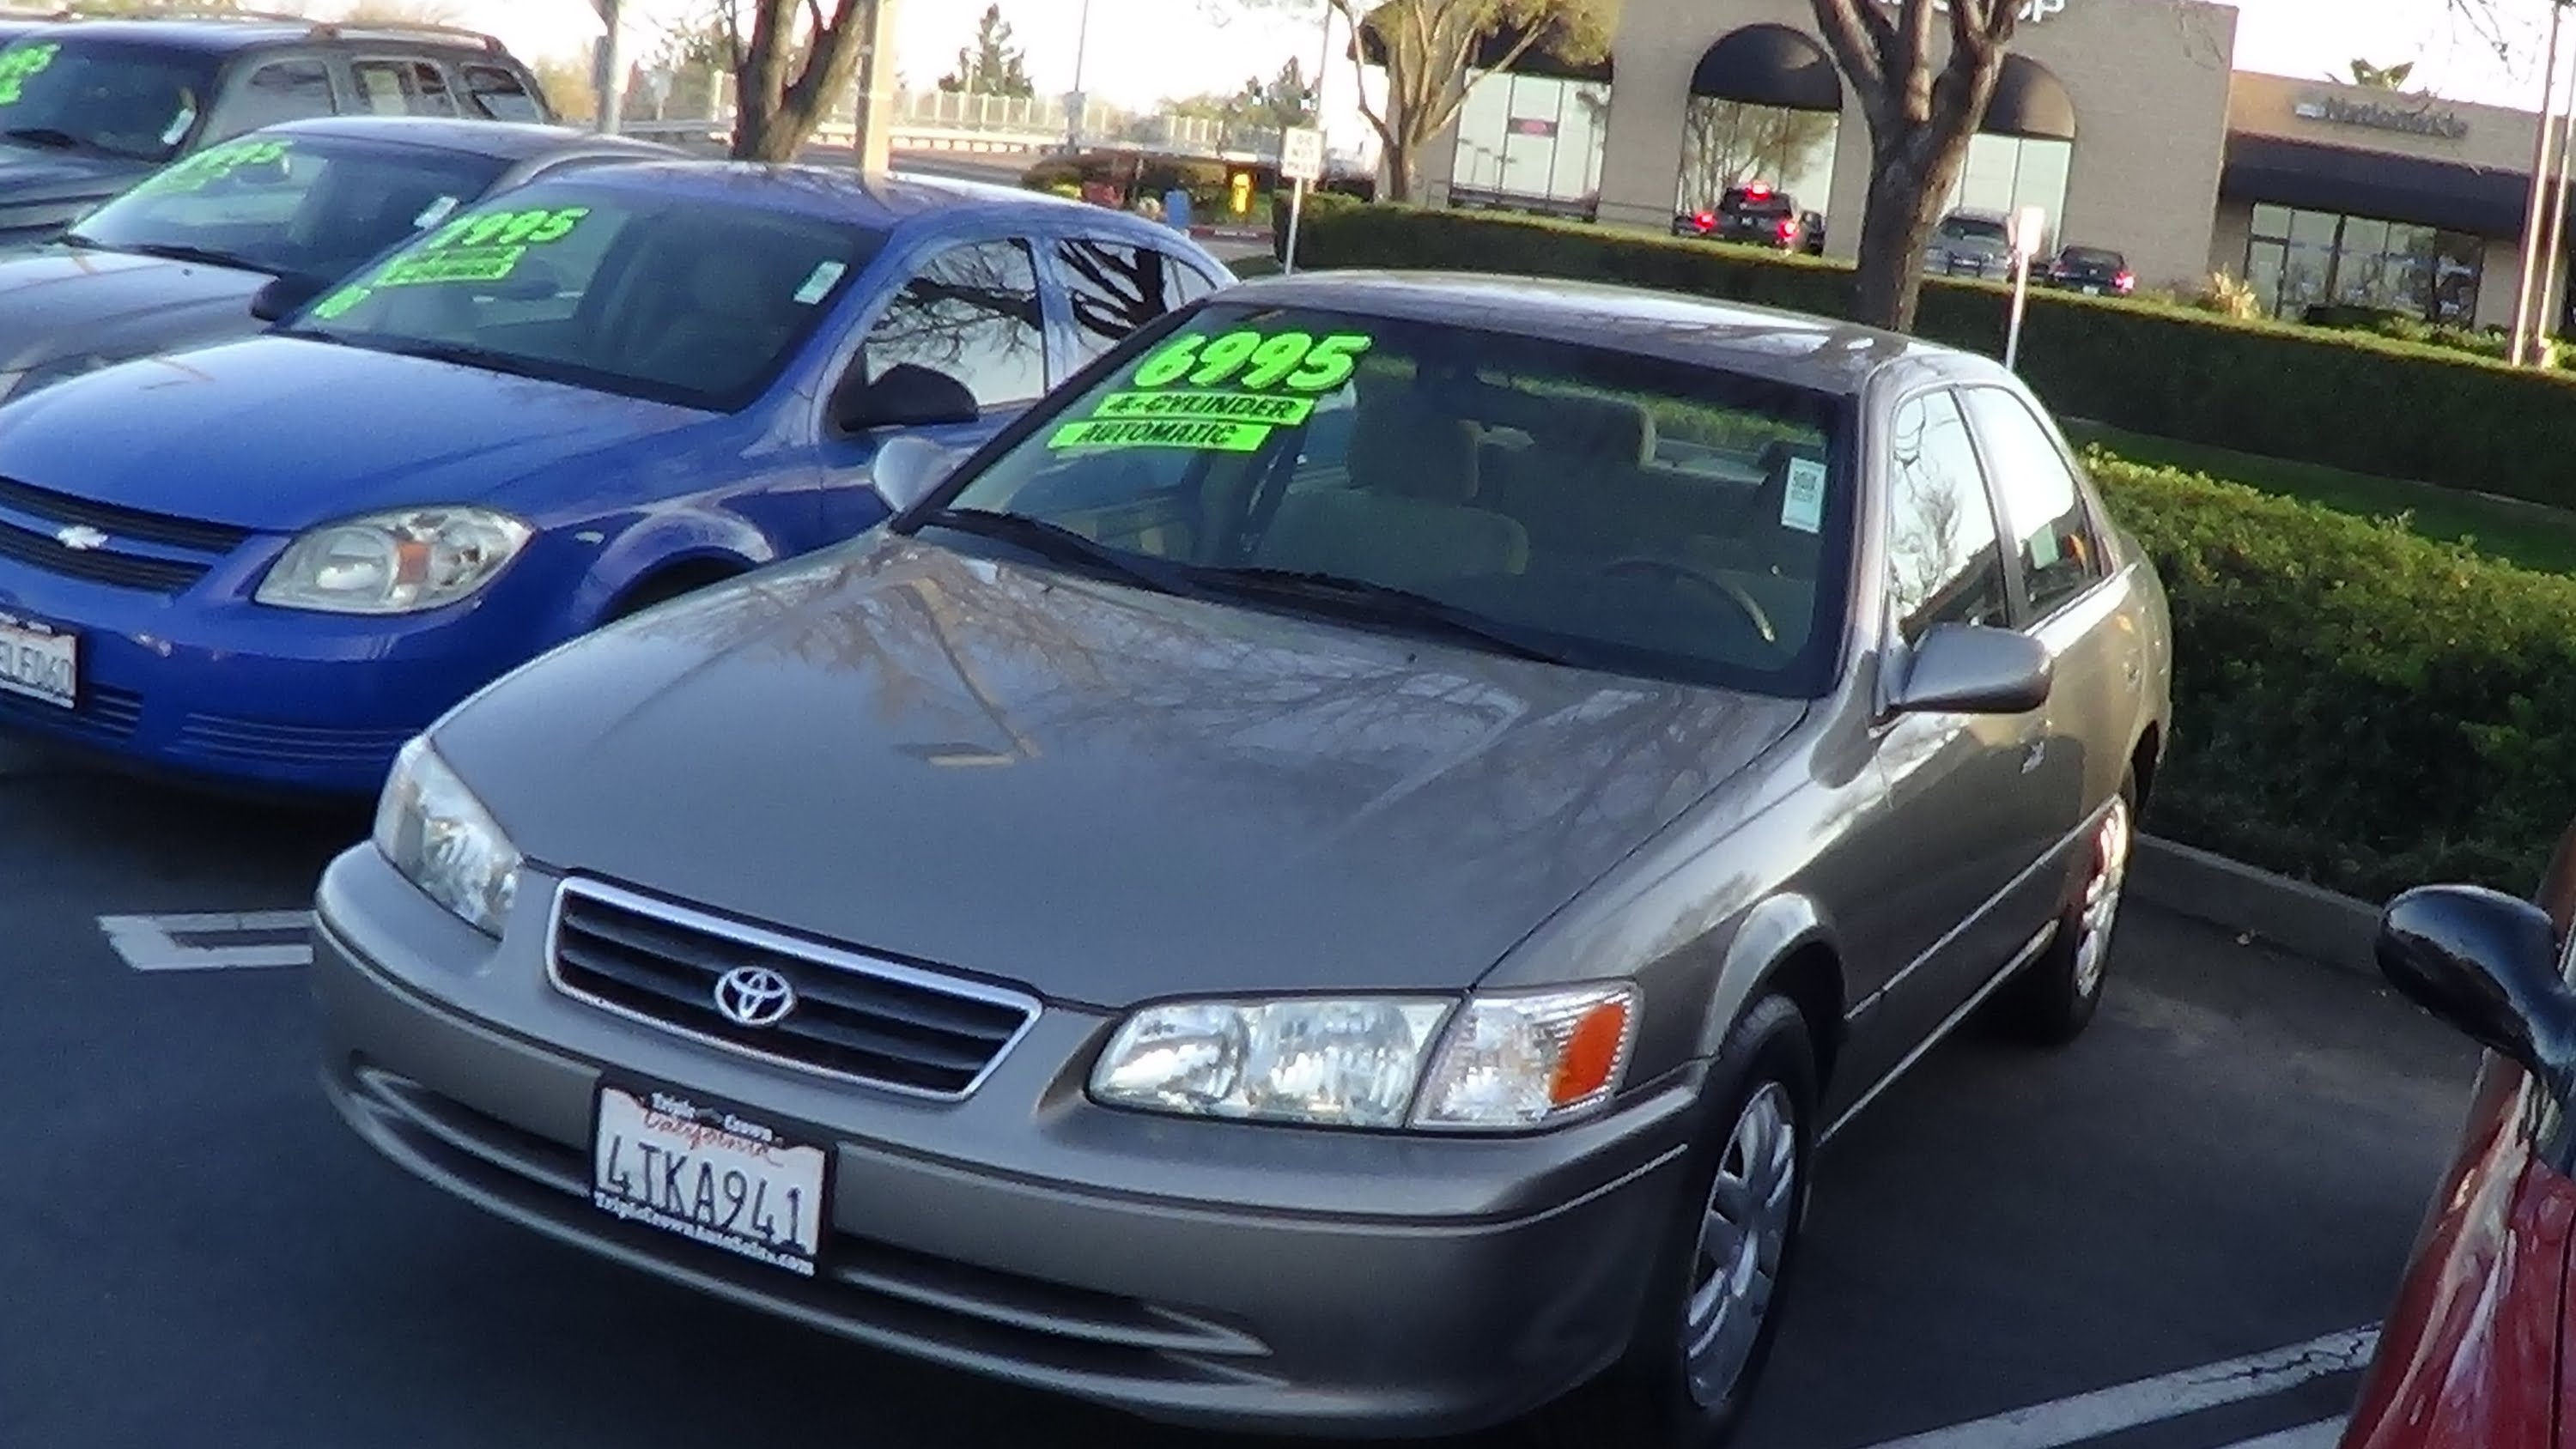 Best Of 4 Cylinder Cars for Sale Near Me